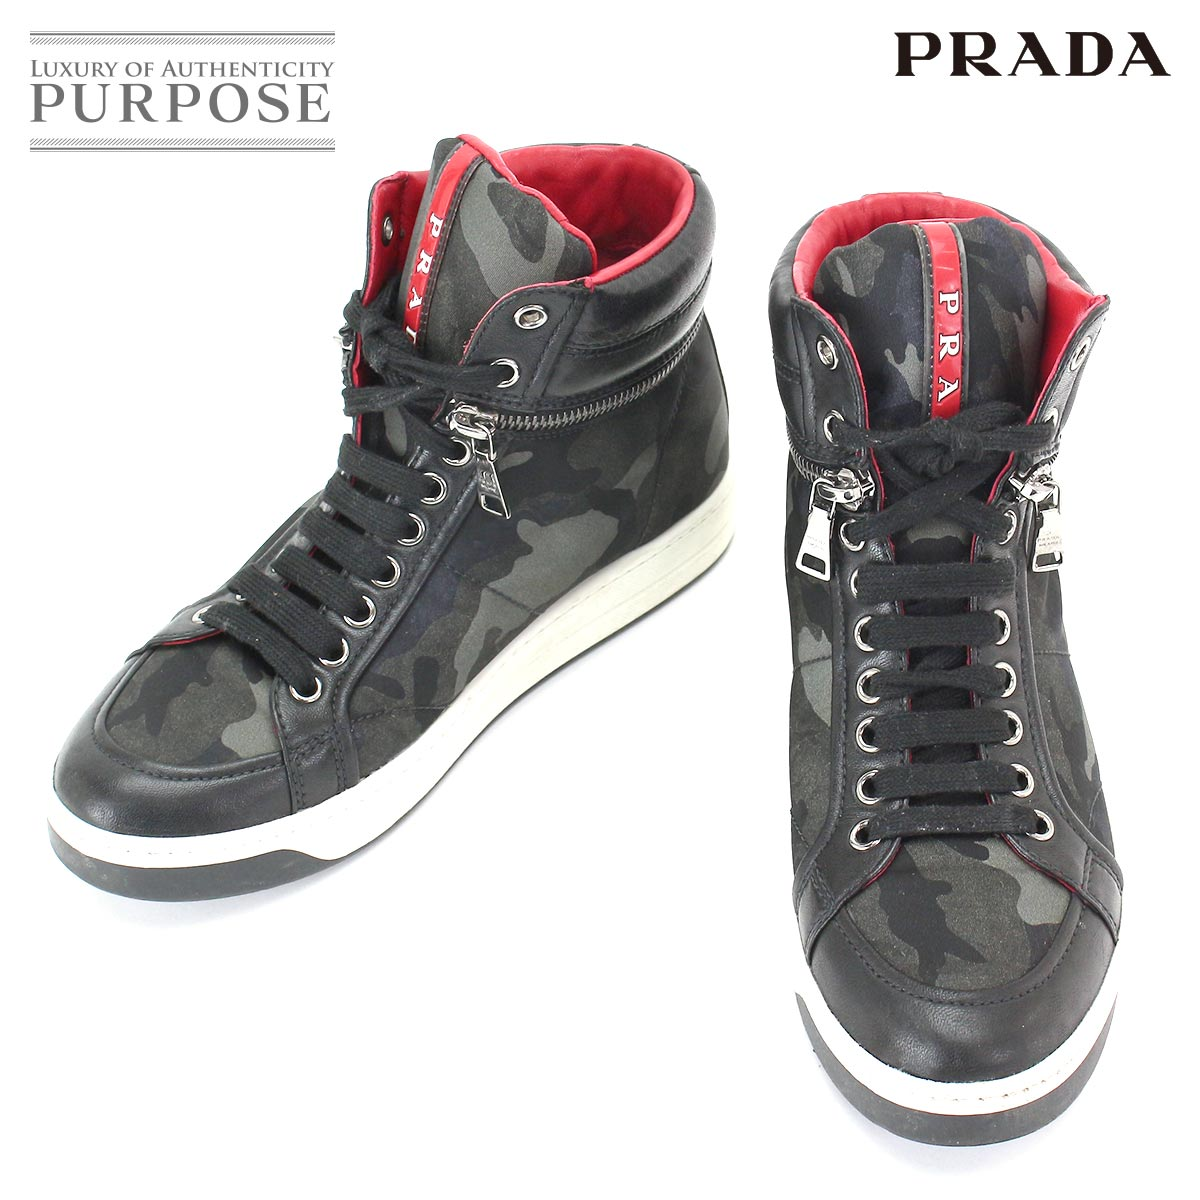 c87fe394f77ea Prada sports PRADA SPORT camouflage higher frequency elimination sneakers  nylon leather black gray 3T5871 35 22.0 22.5cm Lady's [used] accessory